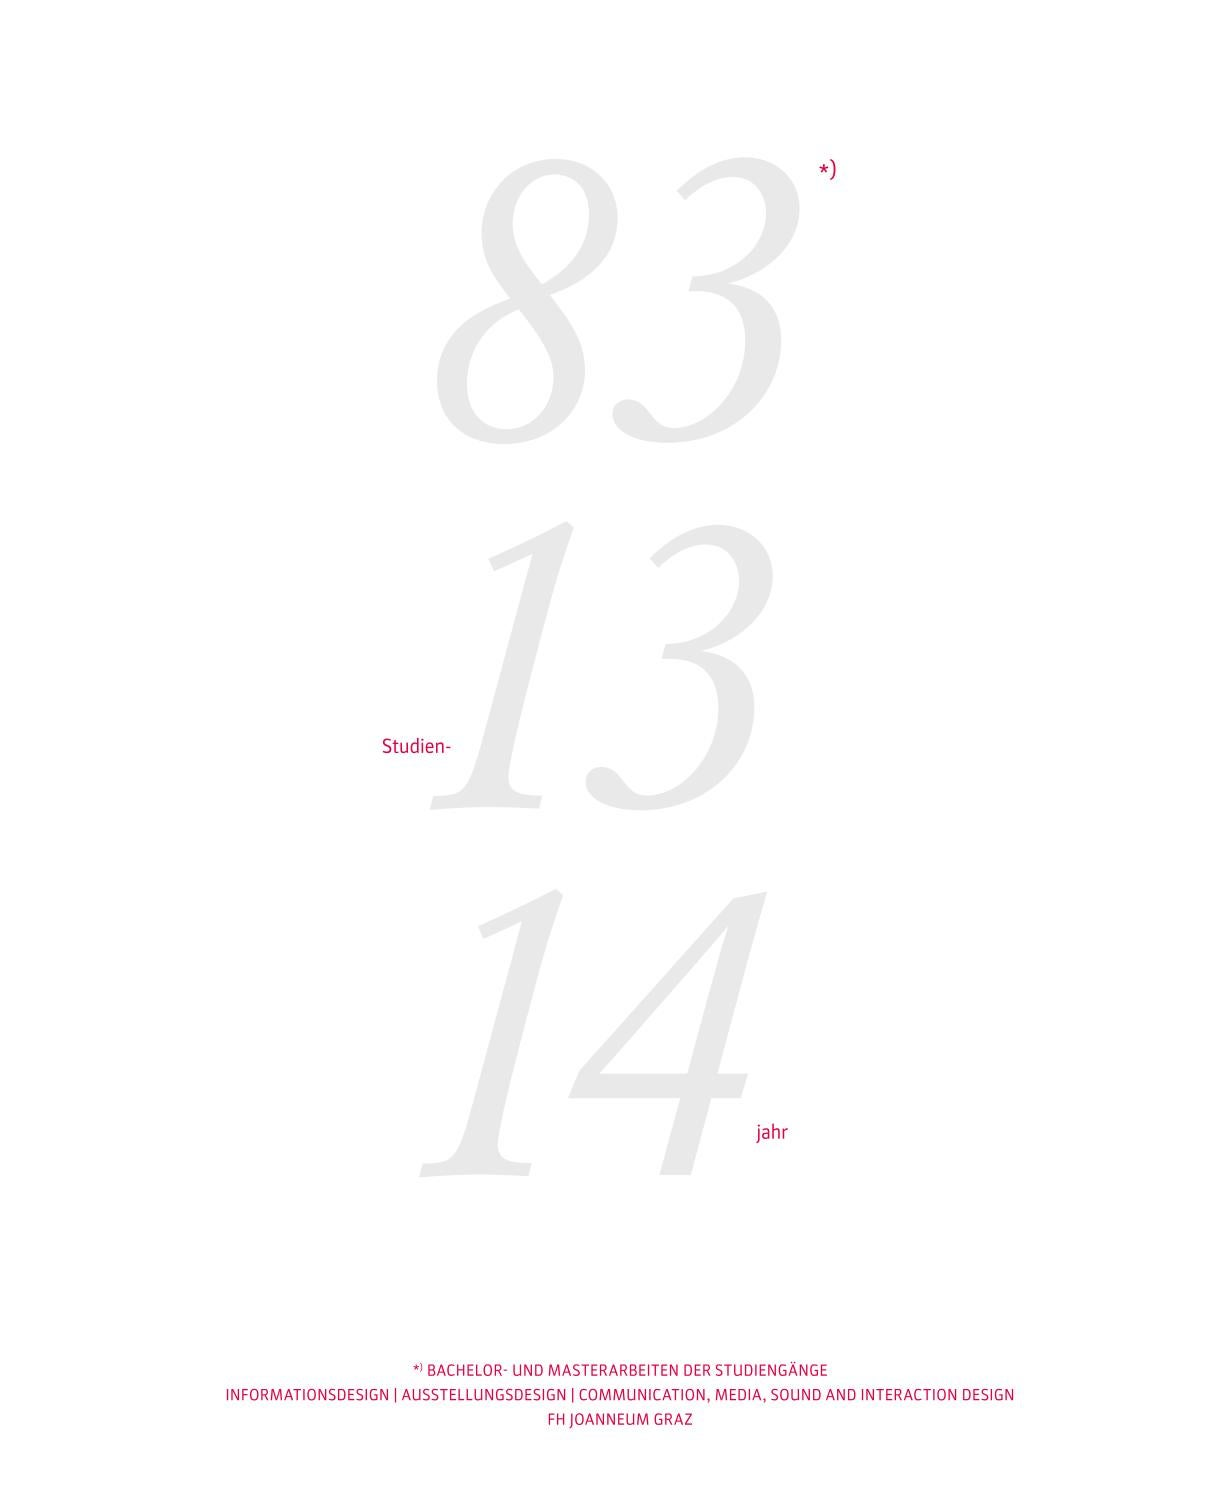 idk-Jahrbuch 83 13 14 by FH JOANNEUM - University of Applied ...